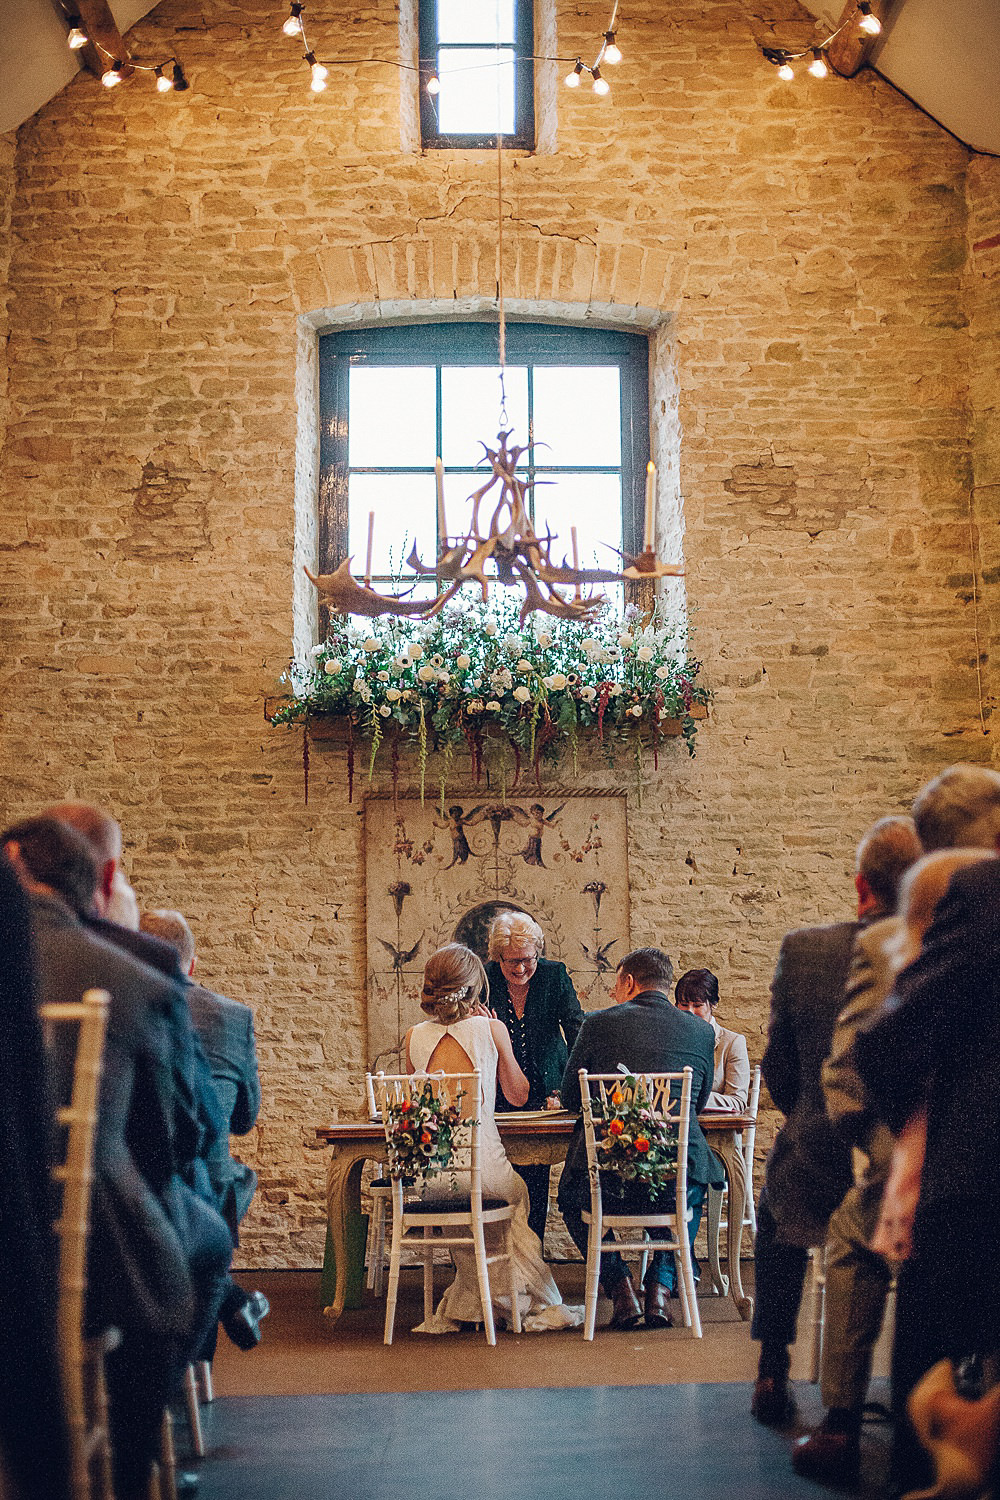 Bride Bridal Lace Boat Neck Cut Out Back Pronovias Neck Dress Tweed Groom Registry Table Floral Runner Chair Backs Navy Merriscourt Barn Wedding Cotswolds Katie de Silva Photography